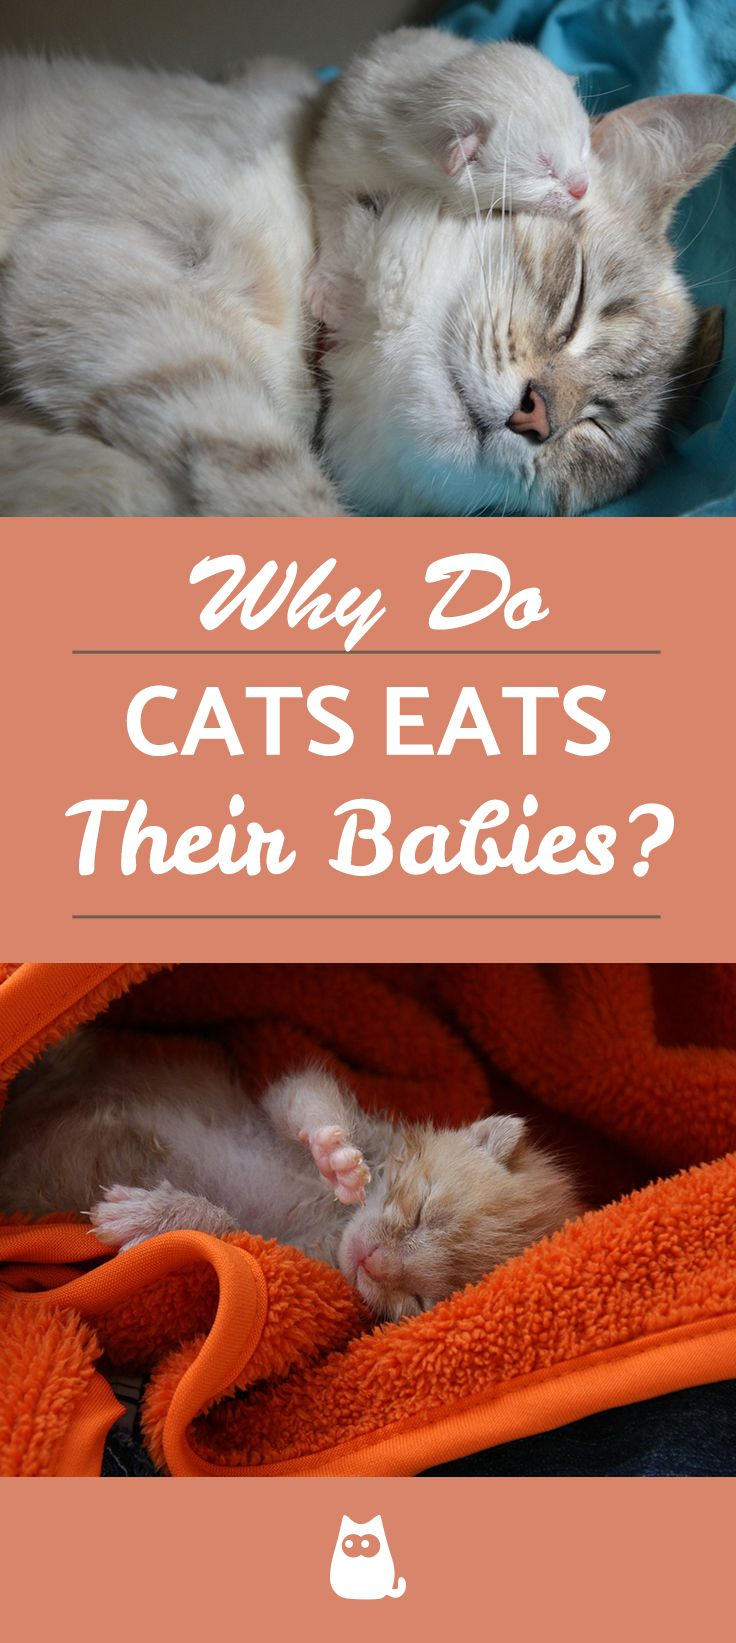 Why Do Cats Eat Their Babies? Cats, Baby kittens, Baby